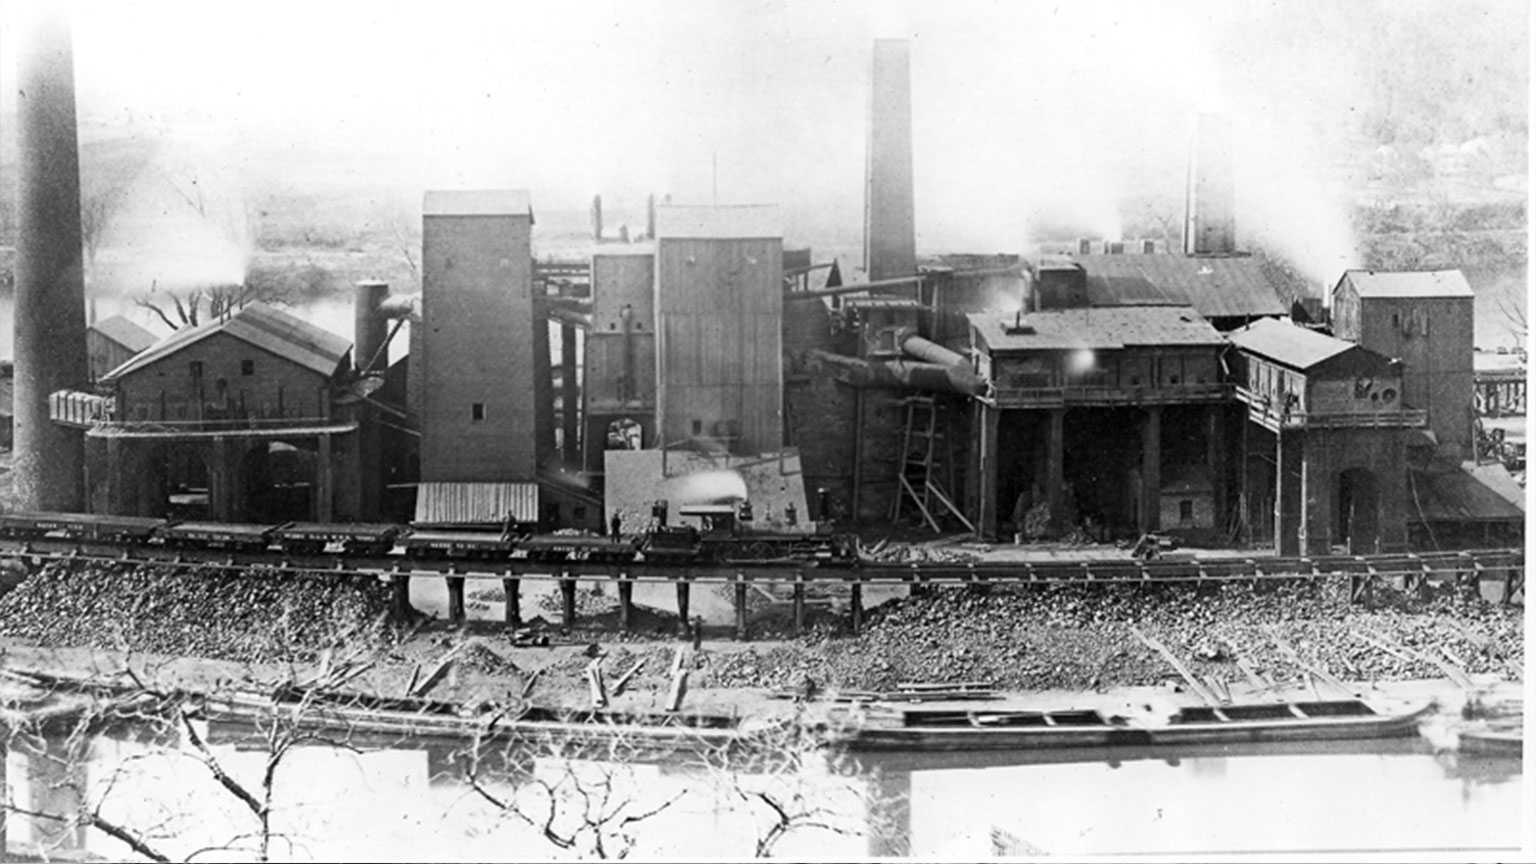 Glendon was a very industrial area when the canal was operating.